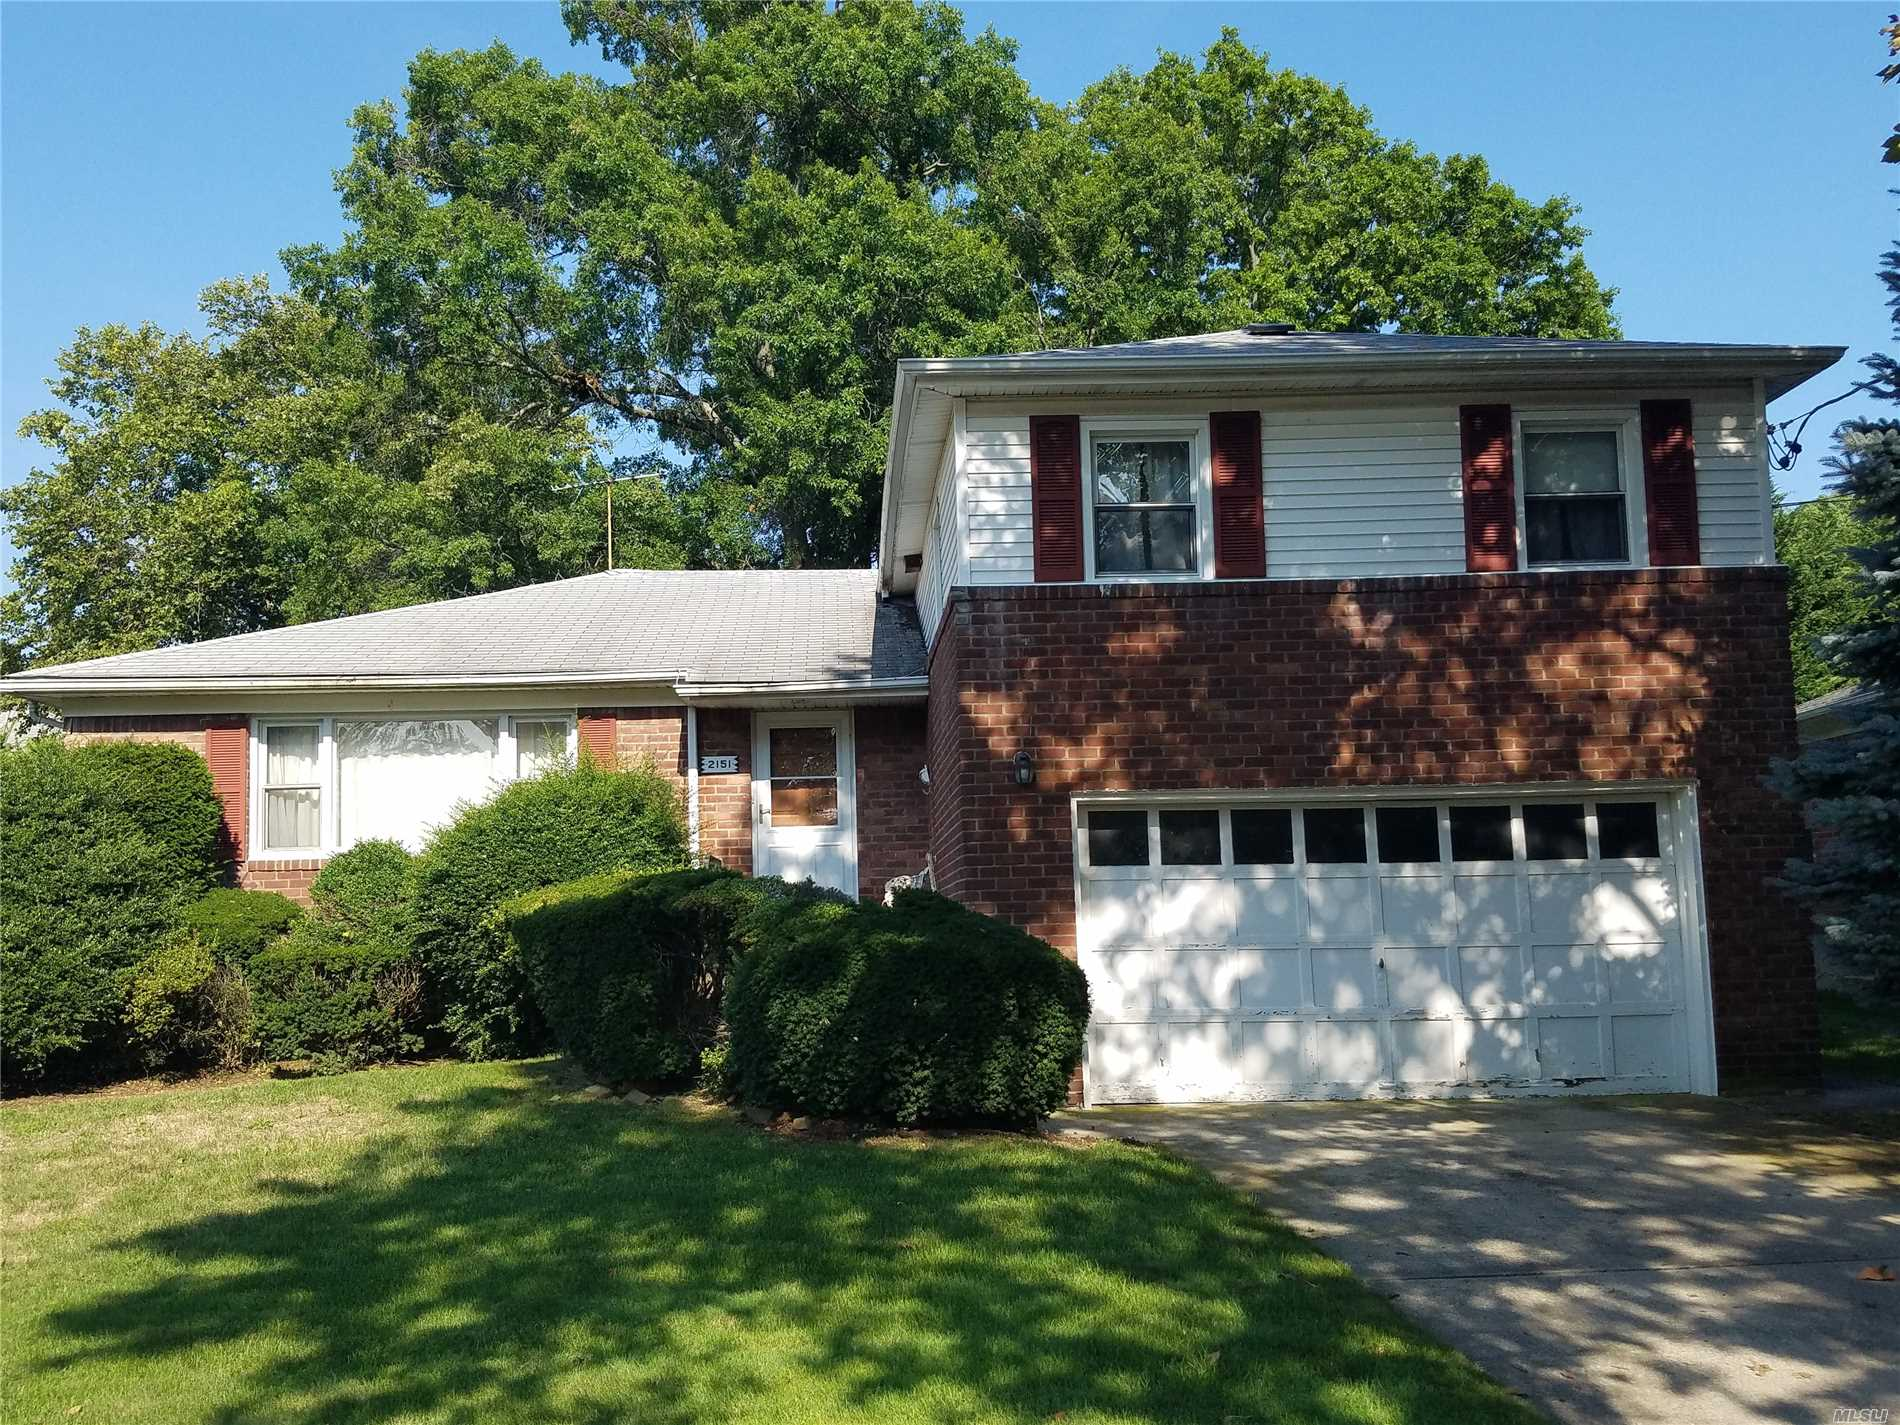 Approved Short Sale. Large Brick Split Level Home That Needs Major Tlc, Has Great Potential. Mid Block Location. Bellmore Sd#7. Currently Has Gas Service For Cooking, Ez Conversion For Heating